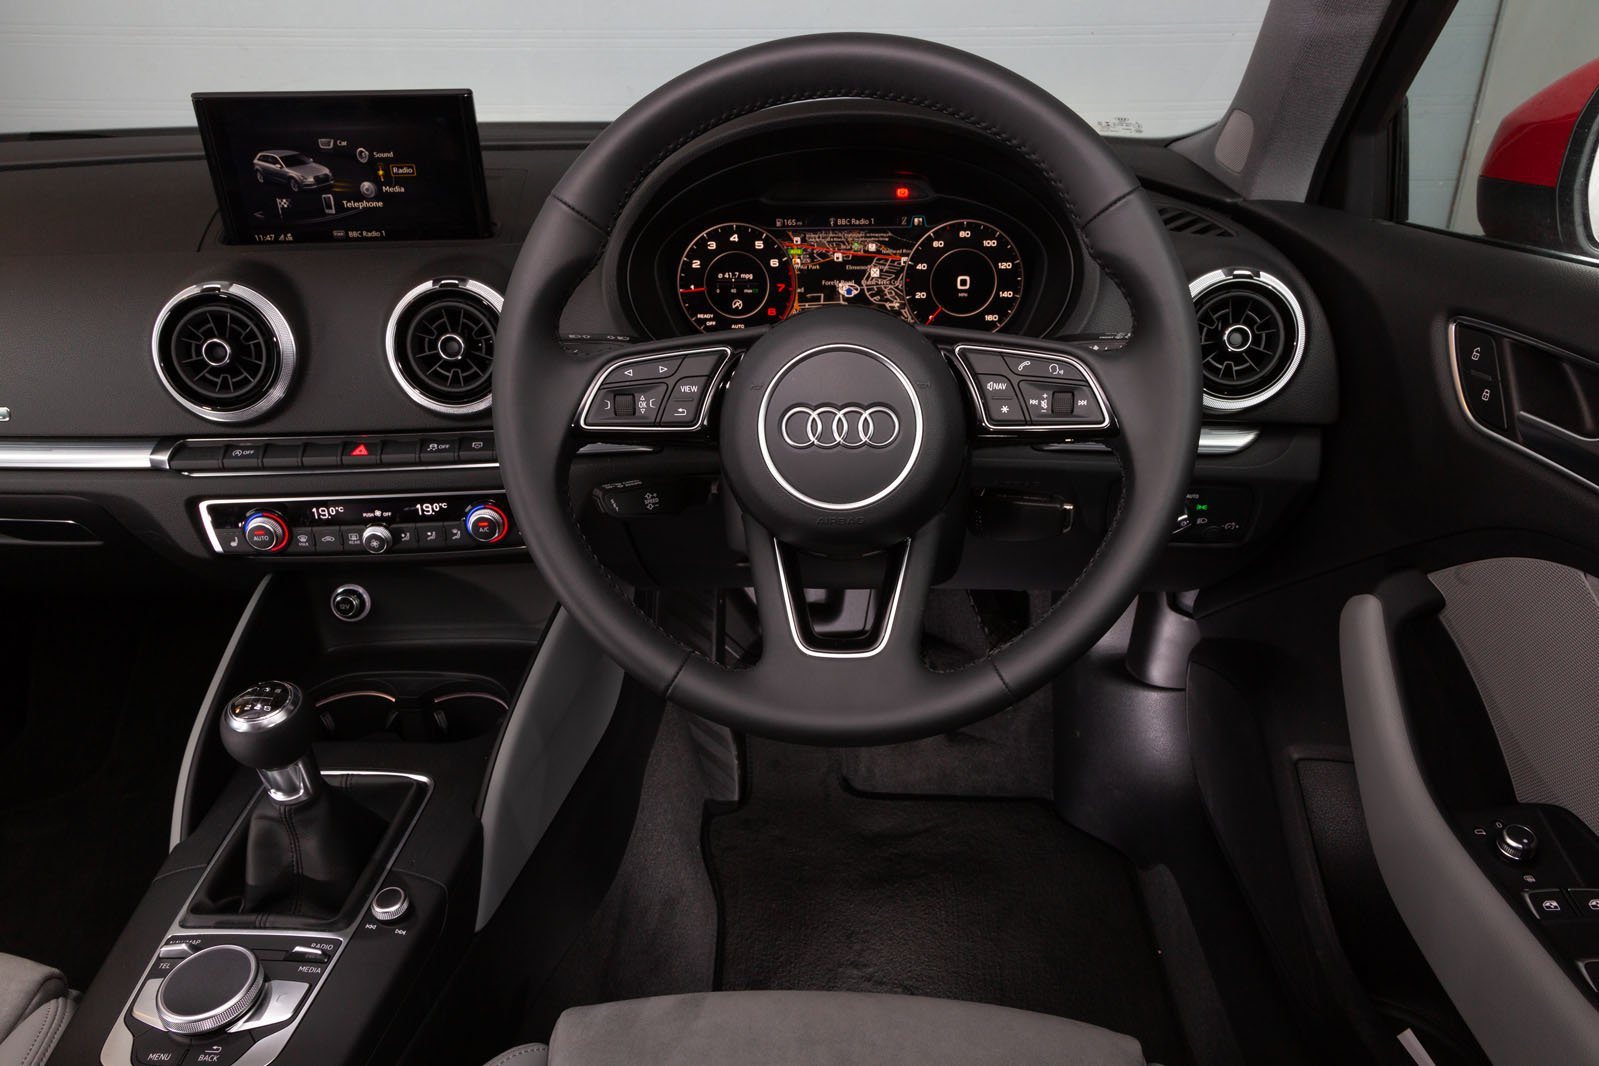 Audi A3 30 TFSI S line S tronic [Tech Pack] - interior